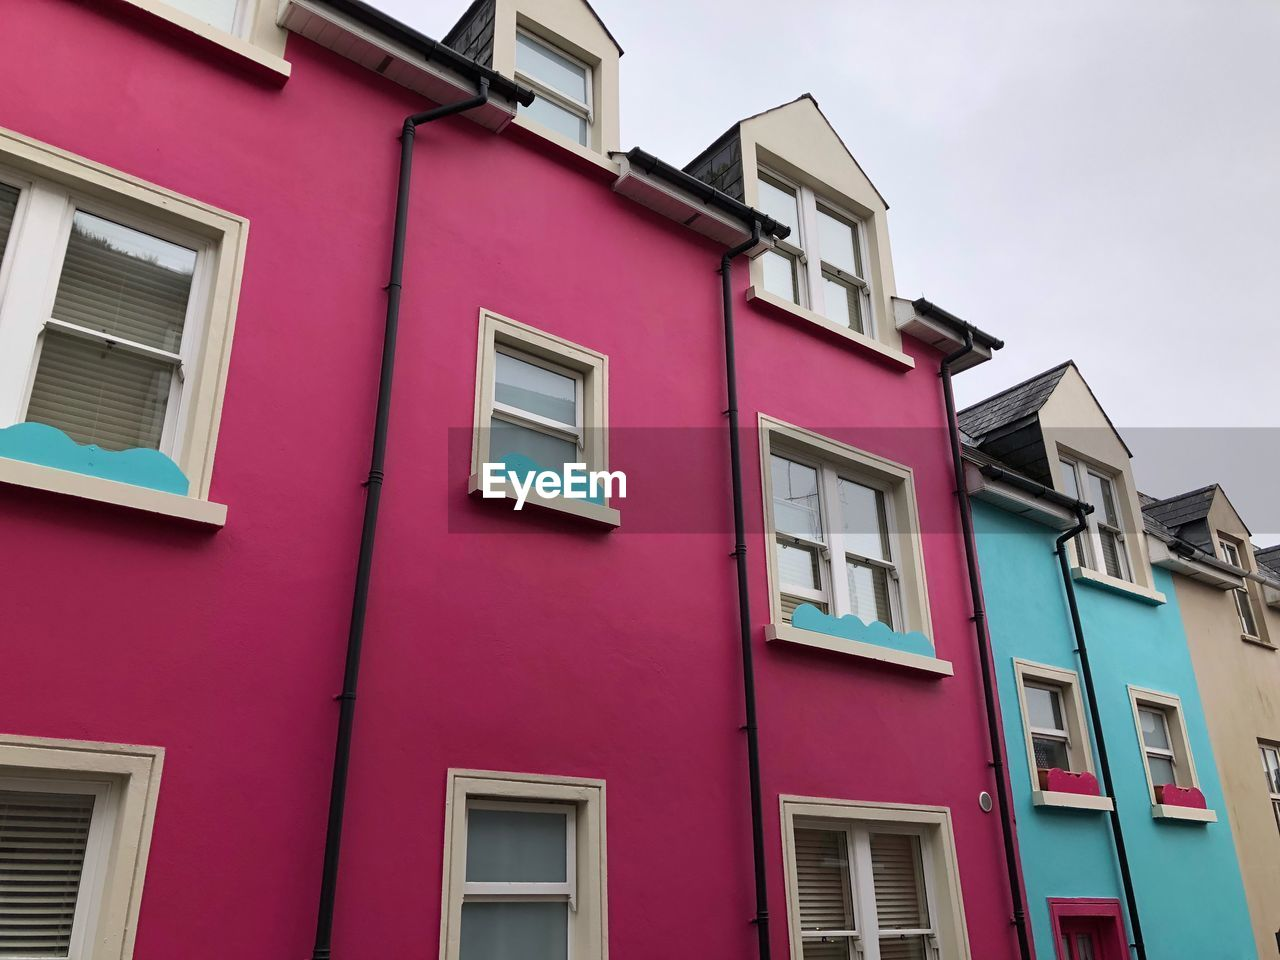 window, architecture, building exterior, built structure, building, low angle view, residential district, pink color, no people, day, outdoors, red, house, multi colored, city, in a row, side by side, pattern, nature, apartment, row house